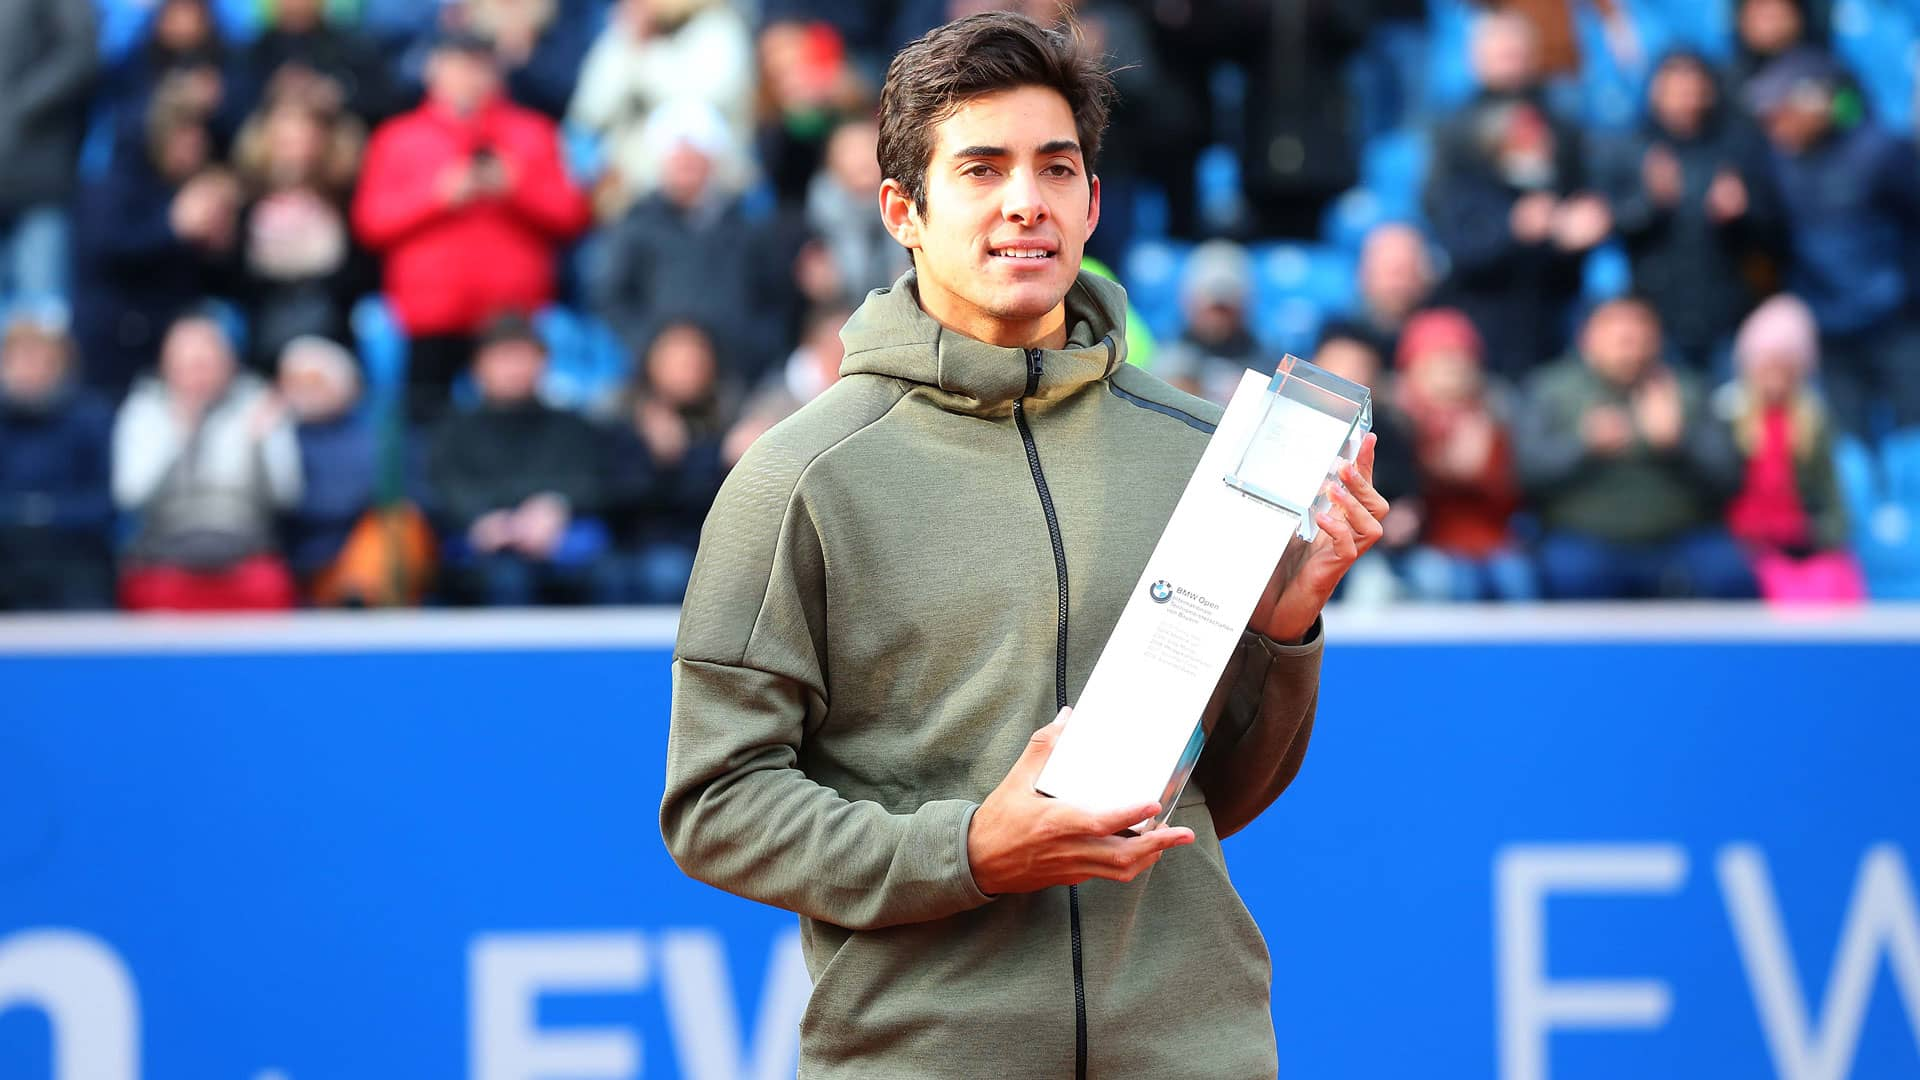 Cristian Garin hoids the winner's trophy in Munich.